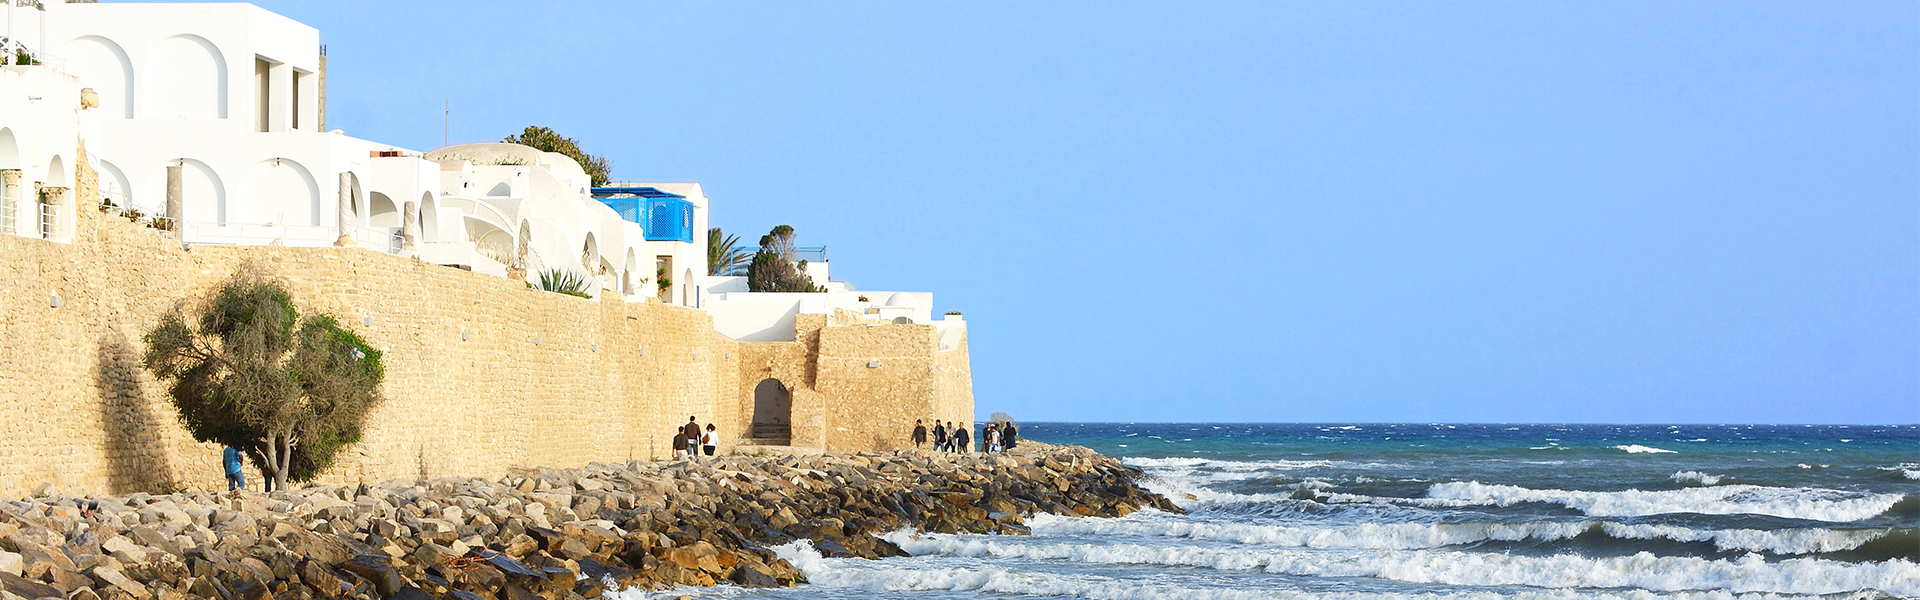 Hamammet coast line in Tunisia